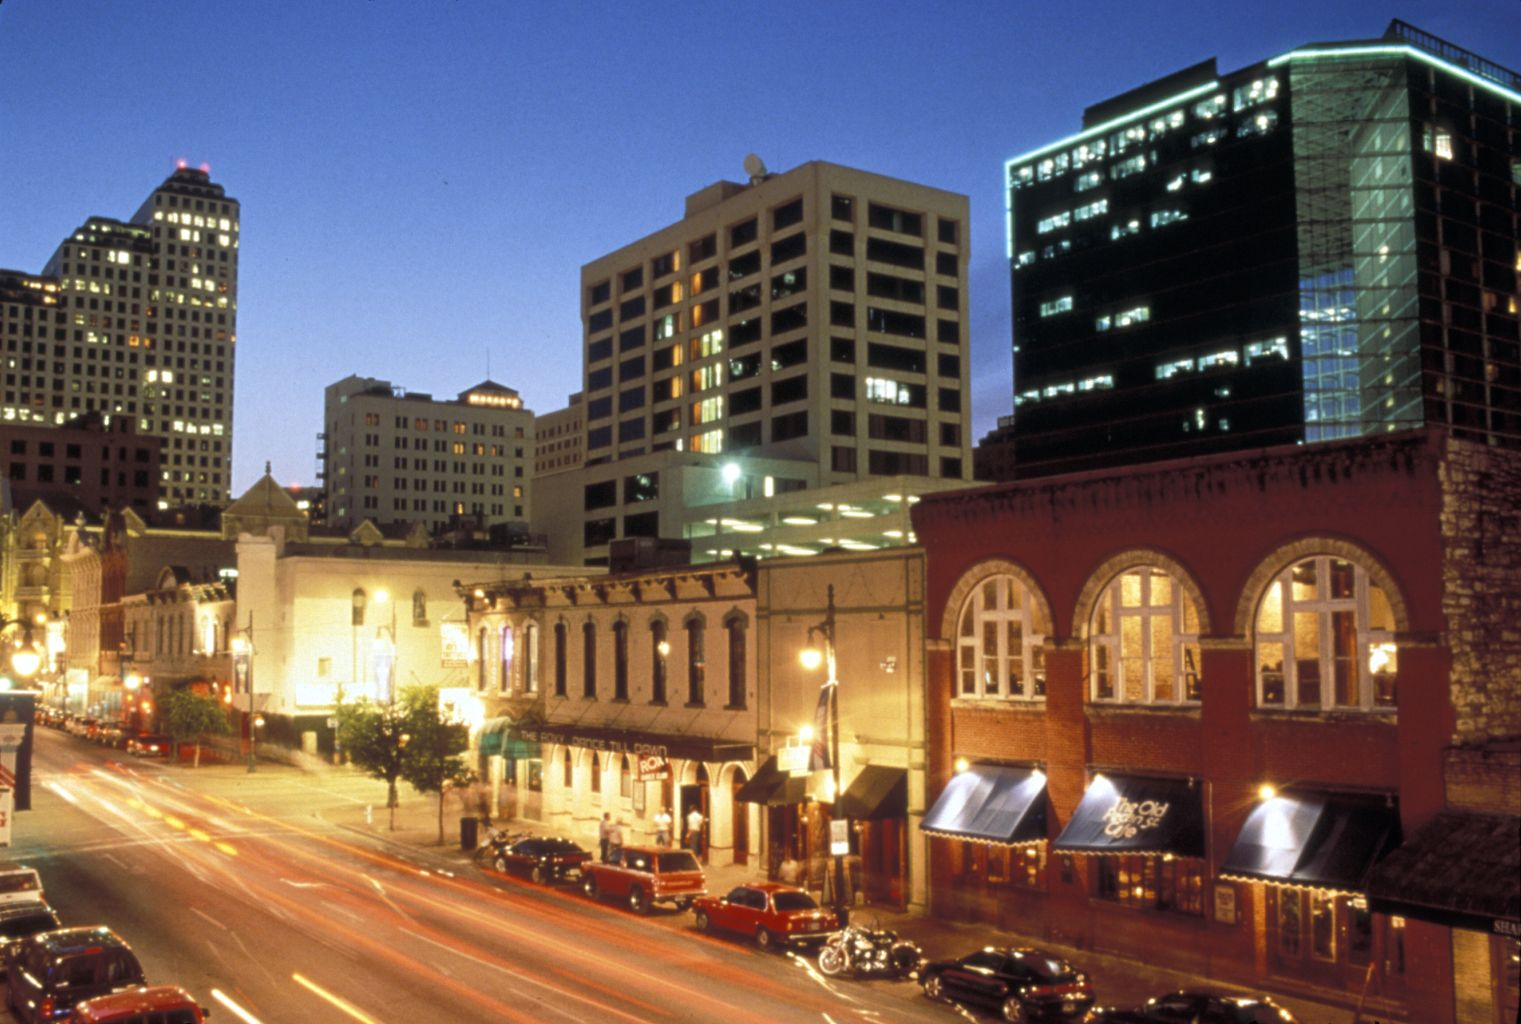 Best Travel Images On Pinterest Austin Texas Architecture - 11 things to see and do in austin texas